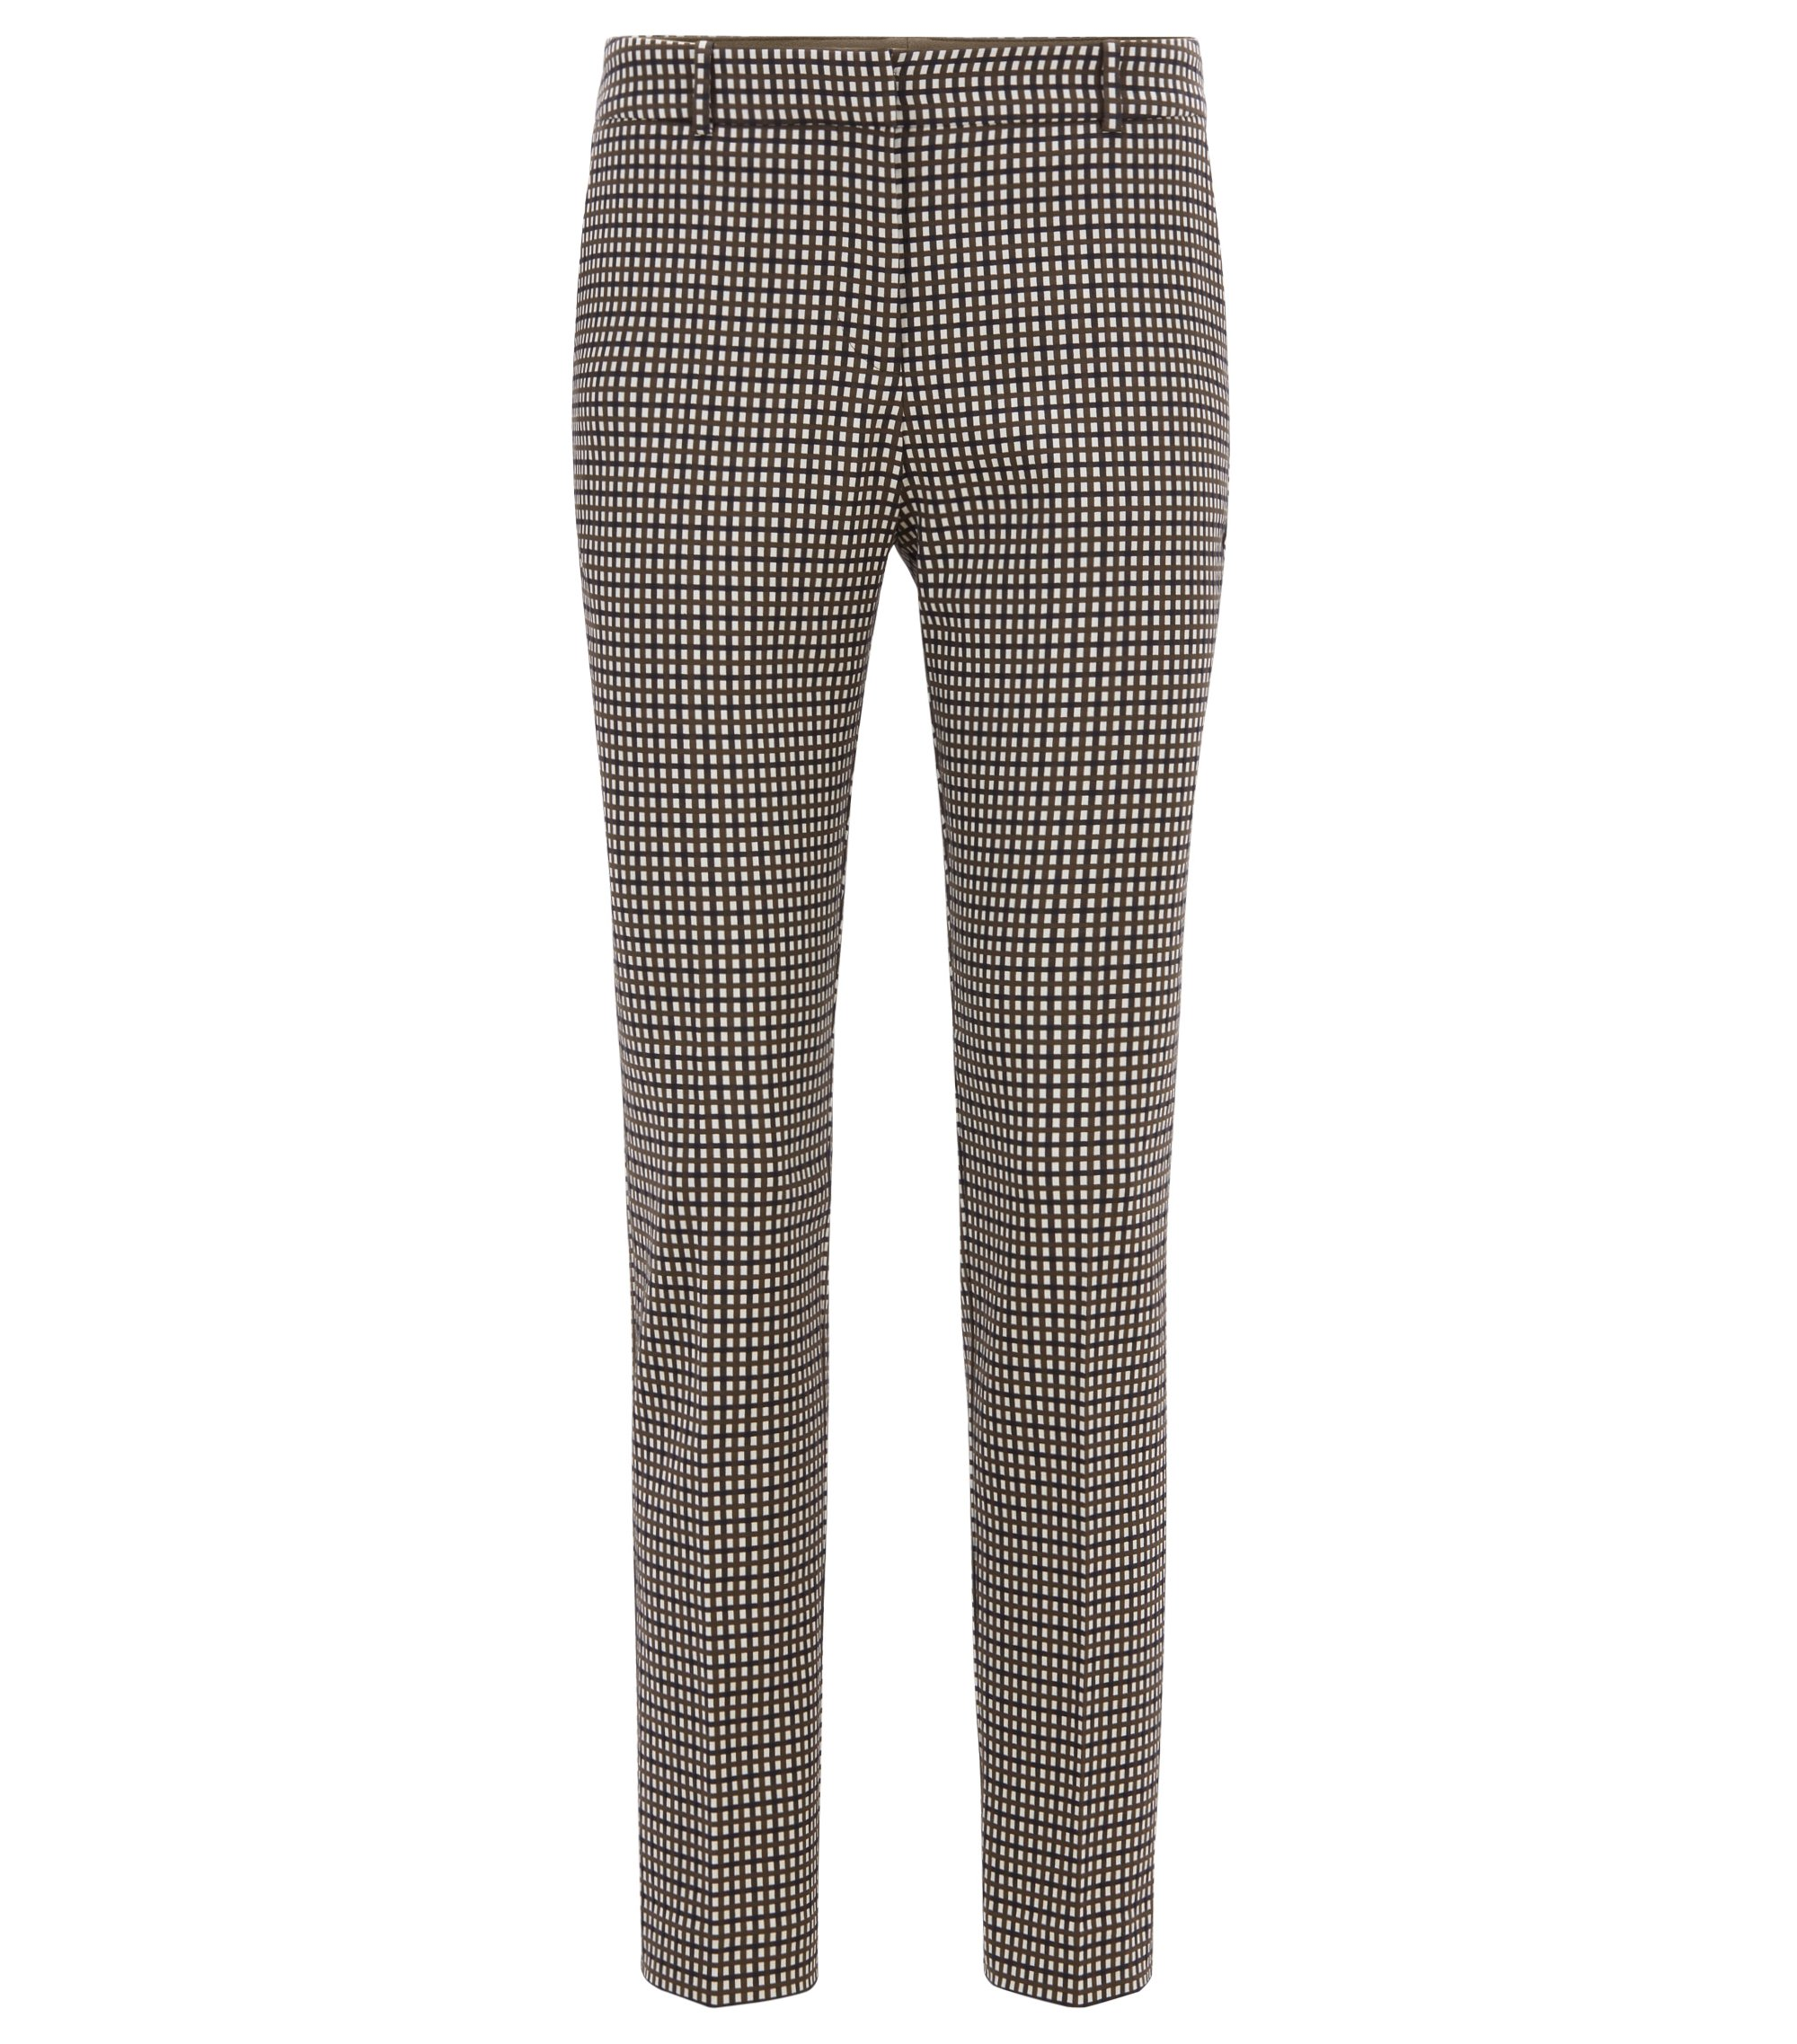 Micro-checked cropped pants in a stretch-cotton blend, Patterned